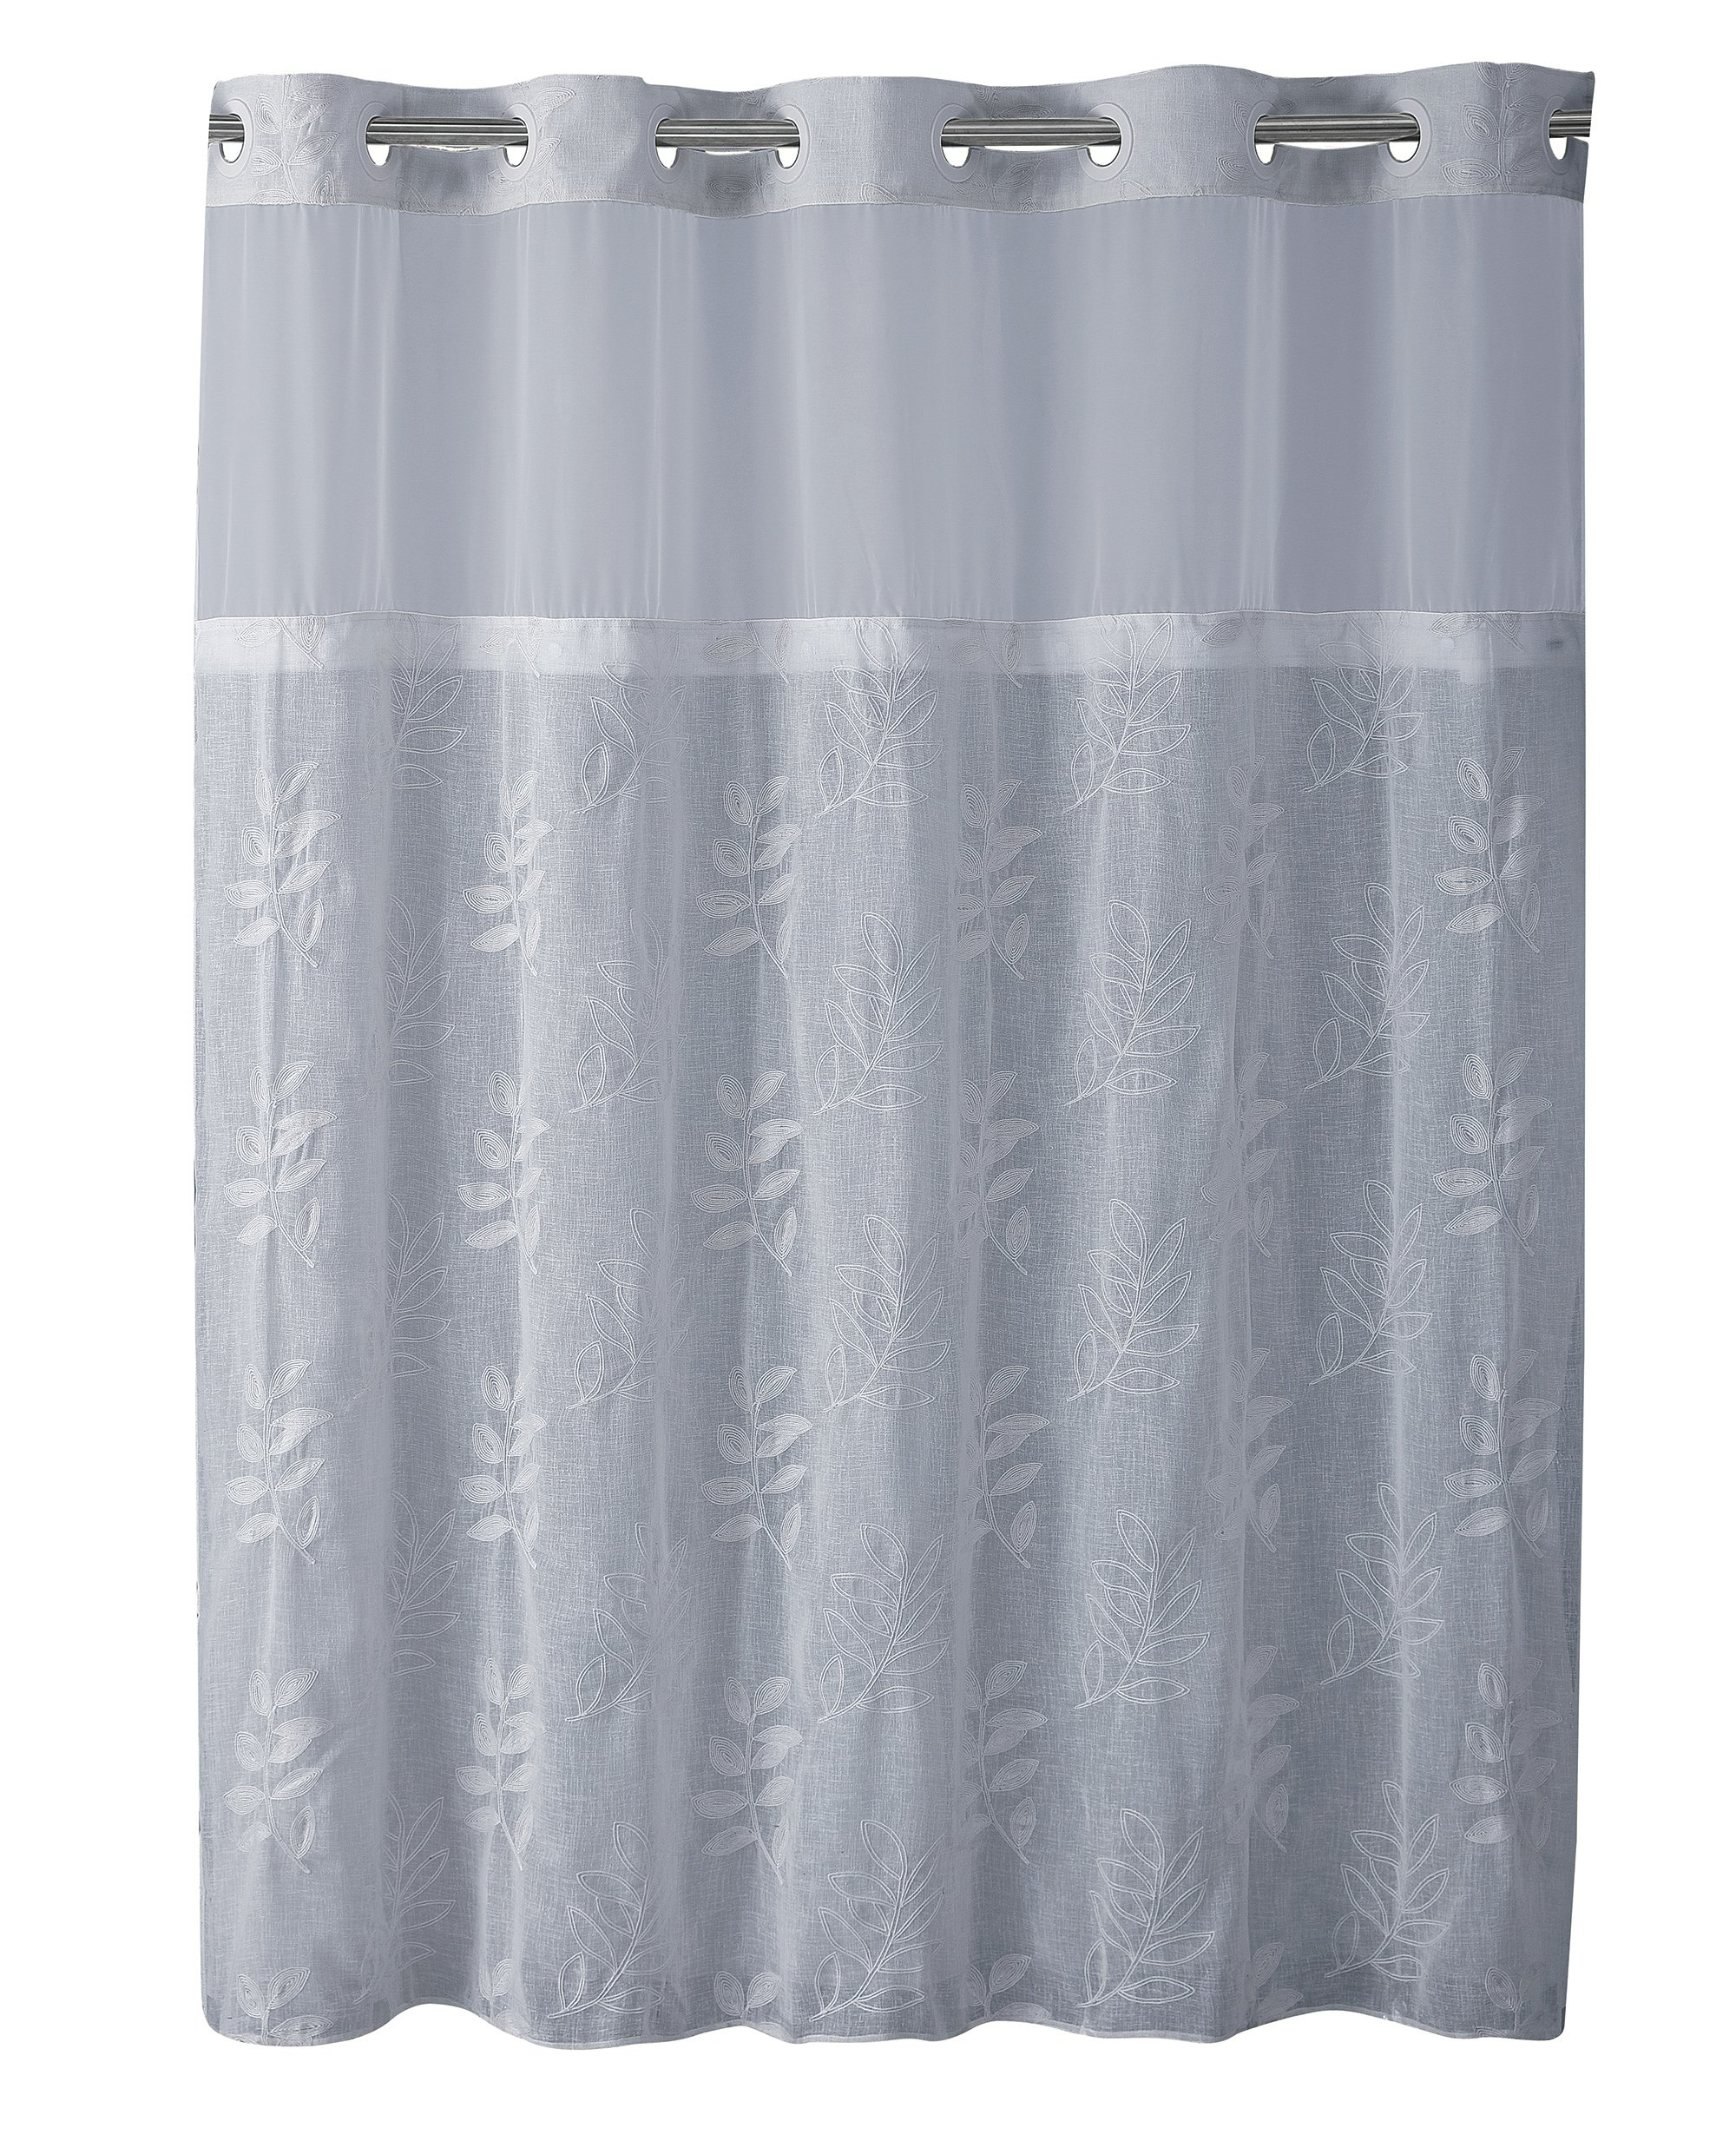 Hookless Palm Leaves Shower Curtain with Flex On Rings and PVC-Free PEVA Liner (Blue)